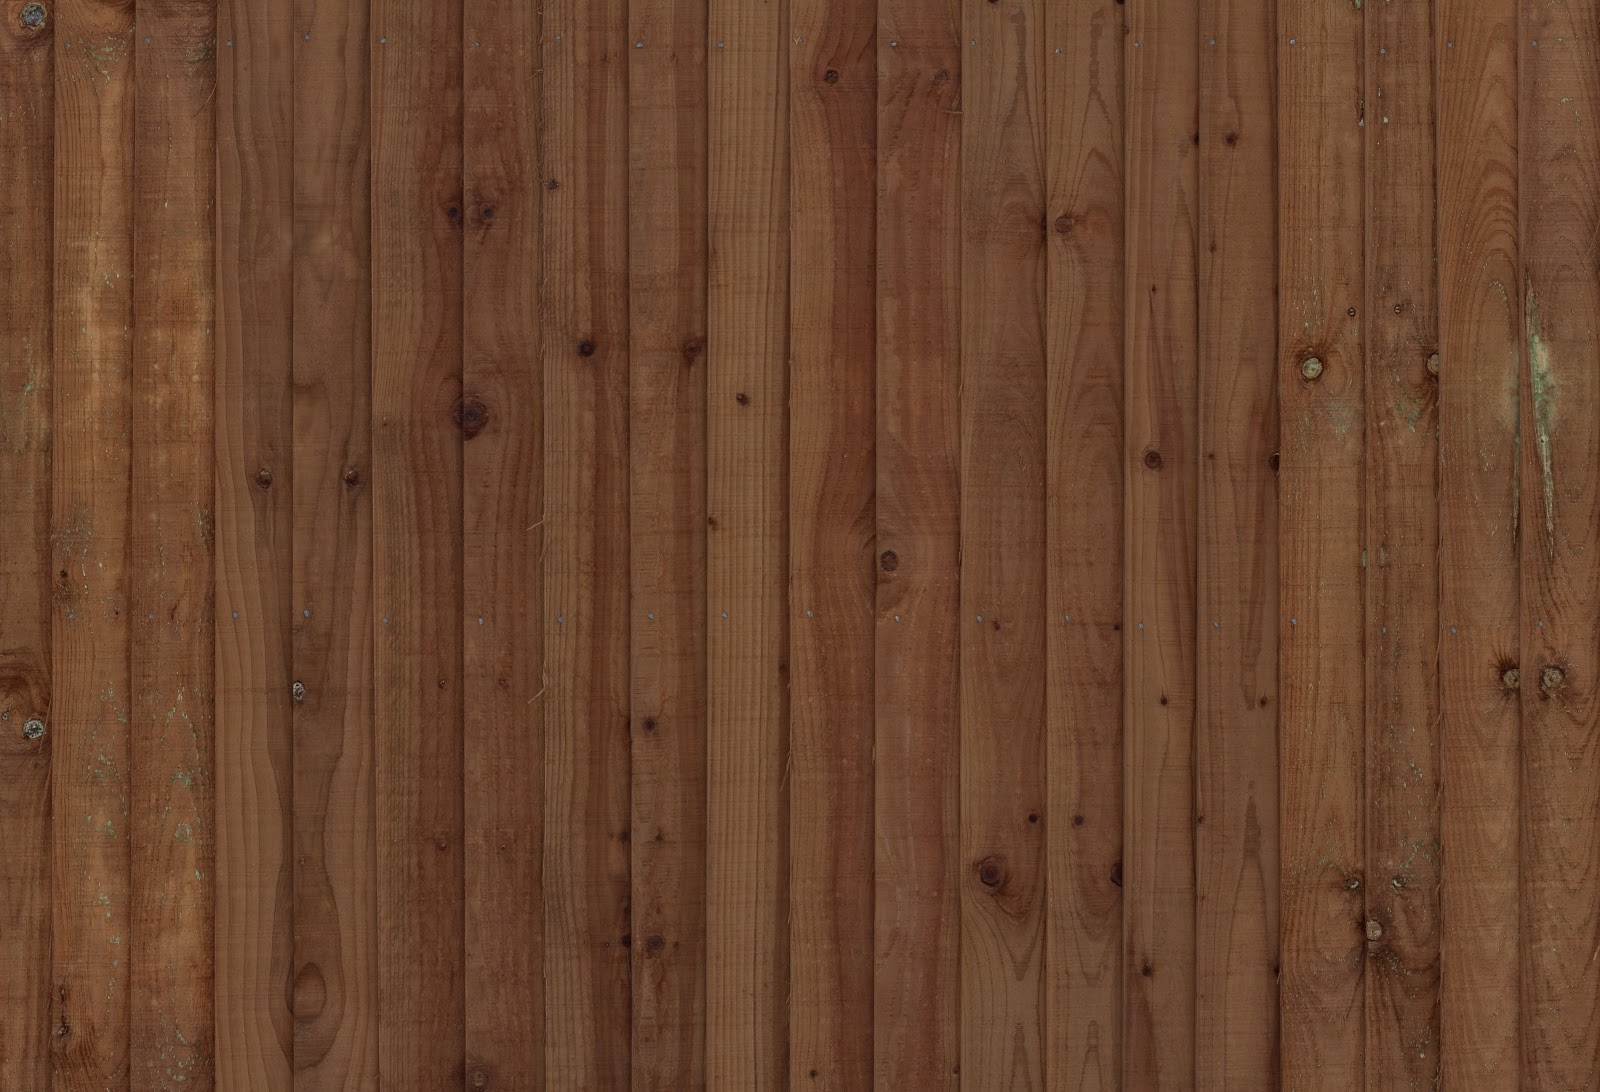 High Resolution Seamless Textures Wooden Fence Texture